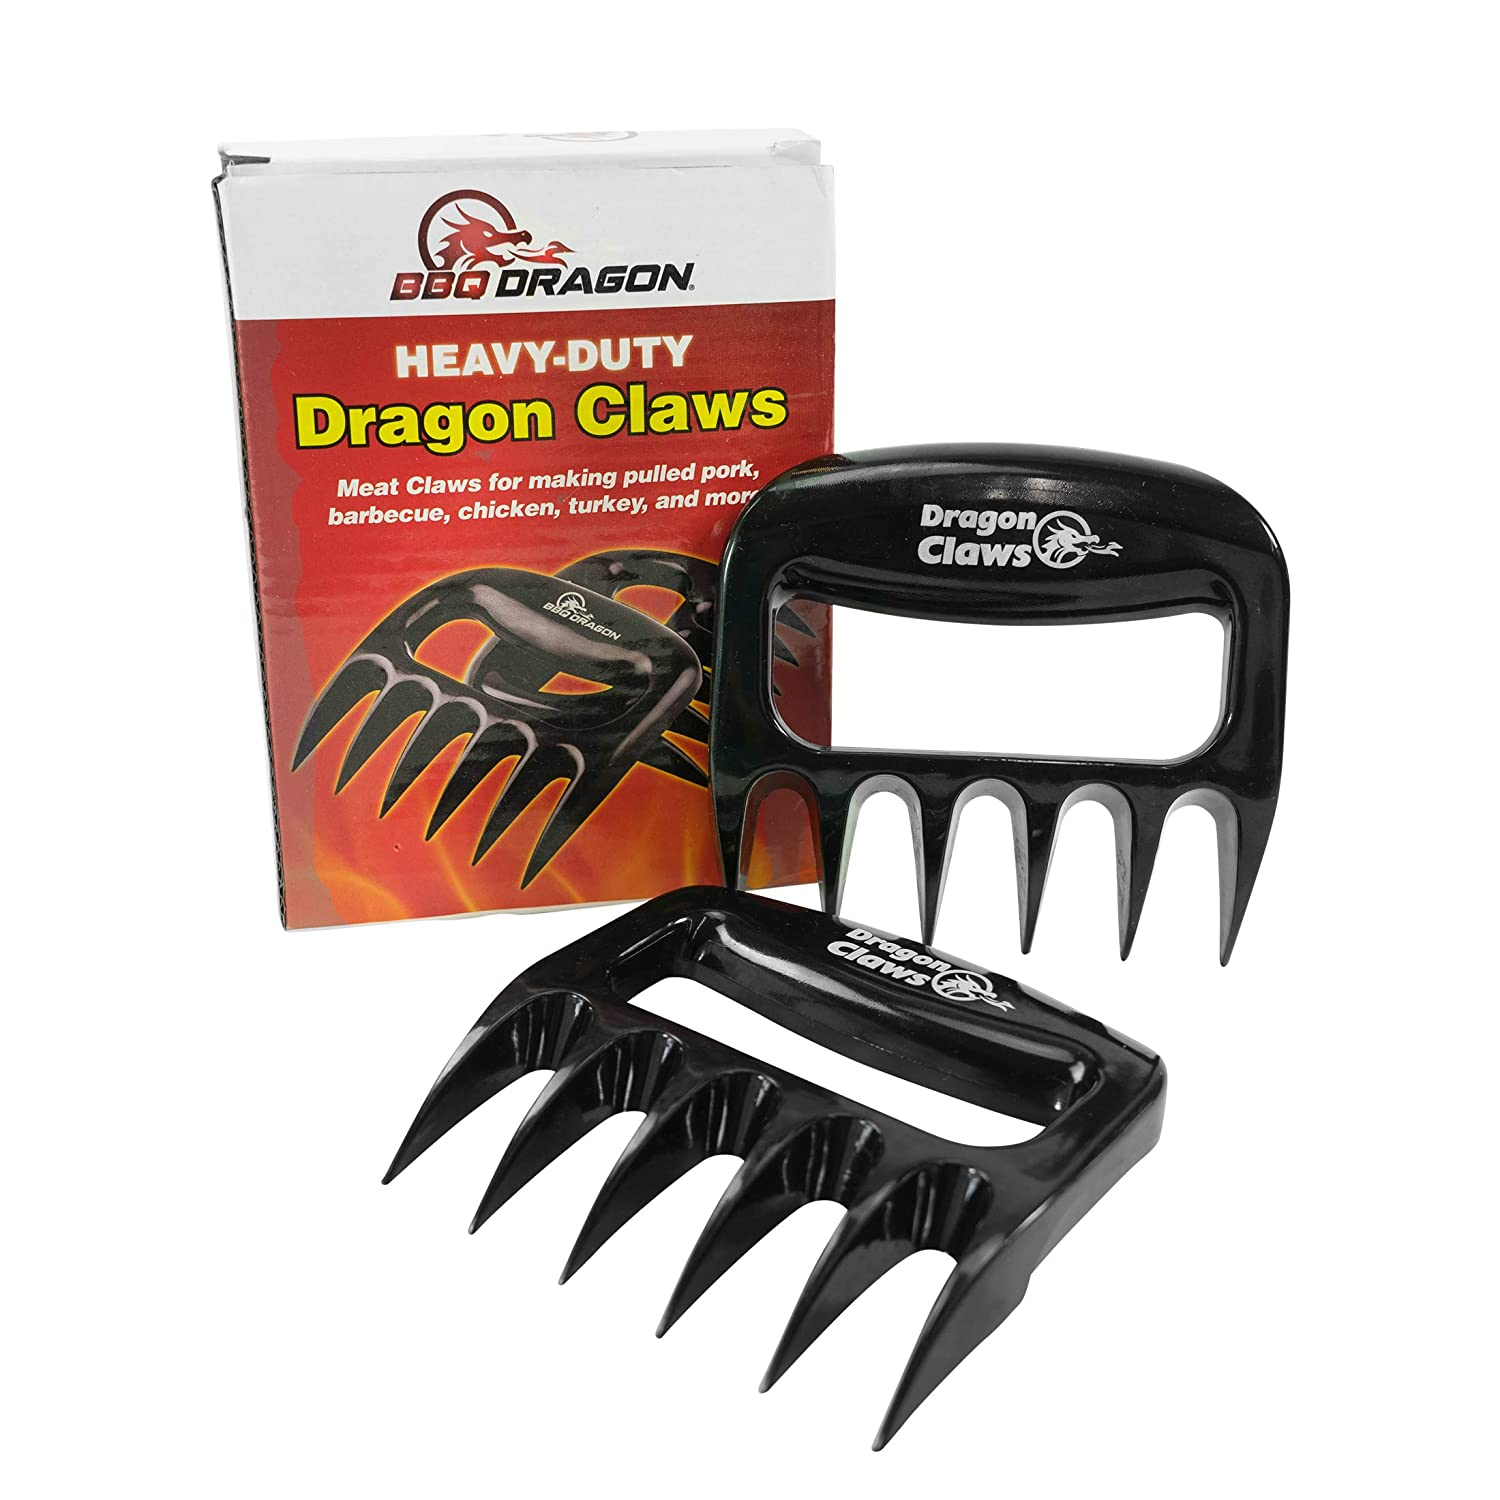 BBQ Dragon Dragon Claws Best for Shredding Meat, Barbecue Meat Claws, Pulled Pork Shredder Tool, BHA Free High Temperature Plastic, BBQ Grill Accessories, Chicken Shredder, BBQ Handler (1 Pair)